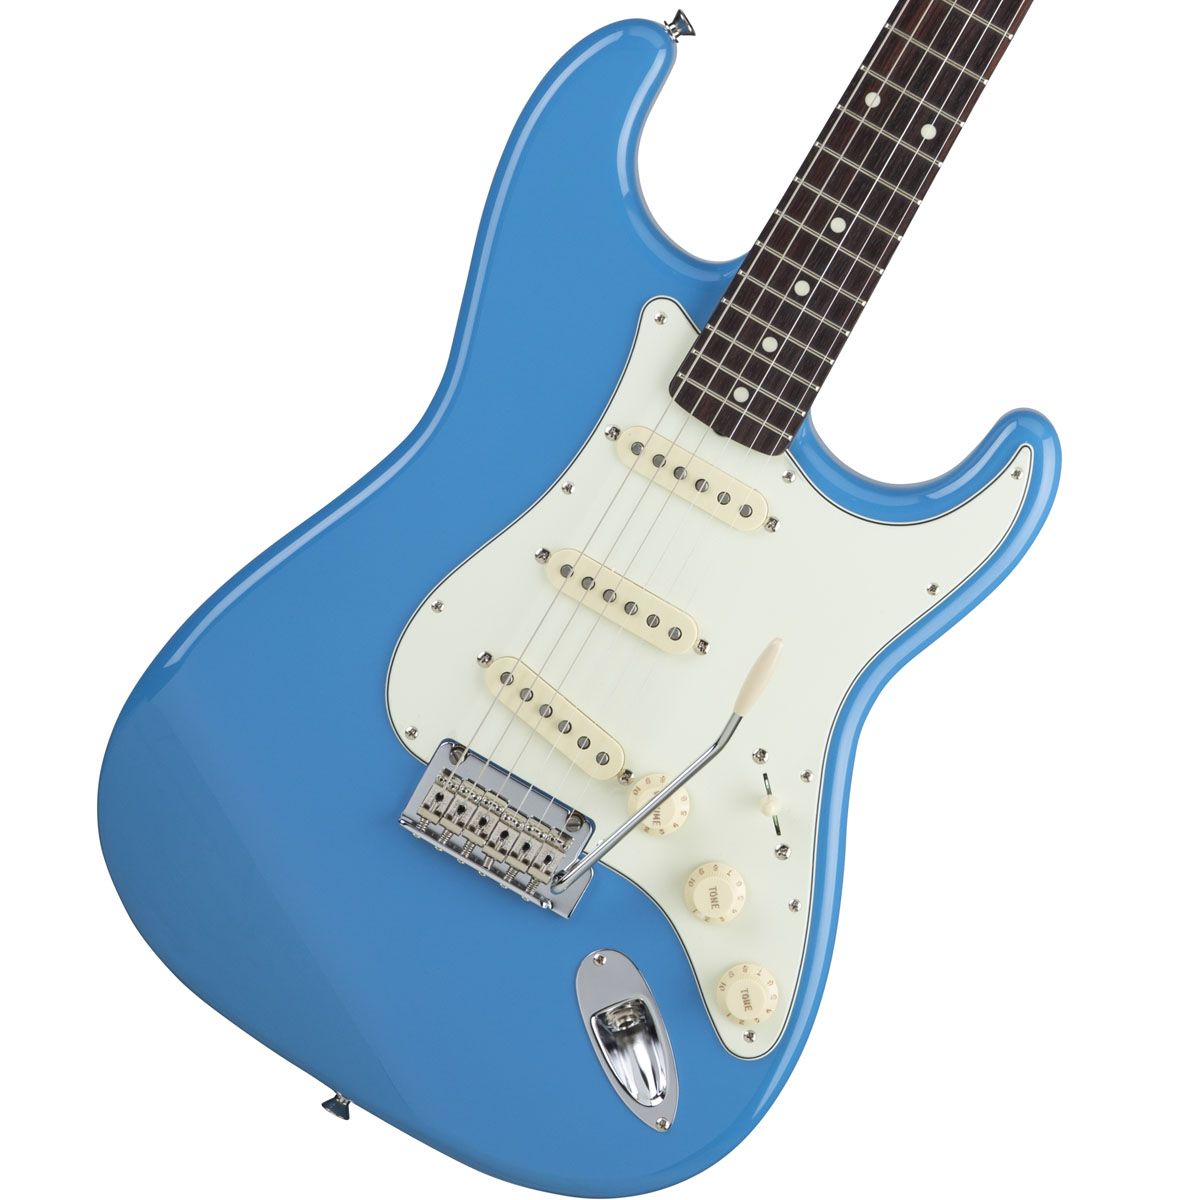 Fender / Made in Japan Hybrid 60s Stratocaster California Blue 《カスタムショップのお手入れ用品を進呈/+671038200》